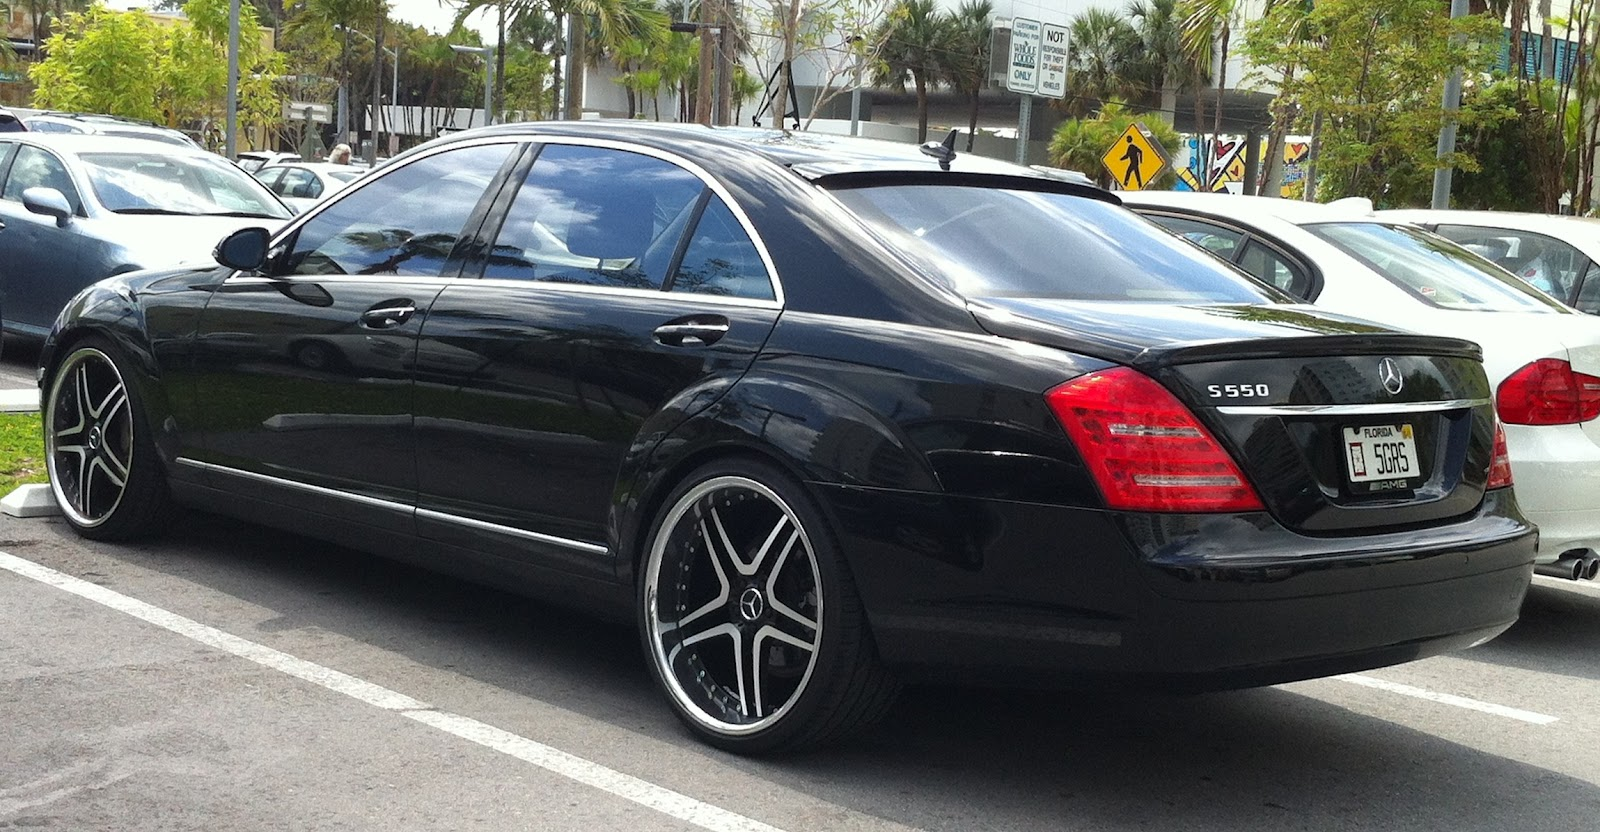 Black mercedes s550 with custom rims exotic cars on the for Mercedes benz s550 rims